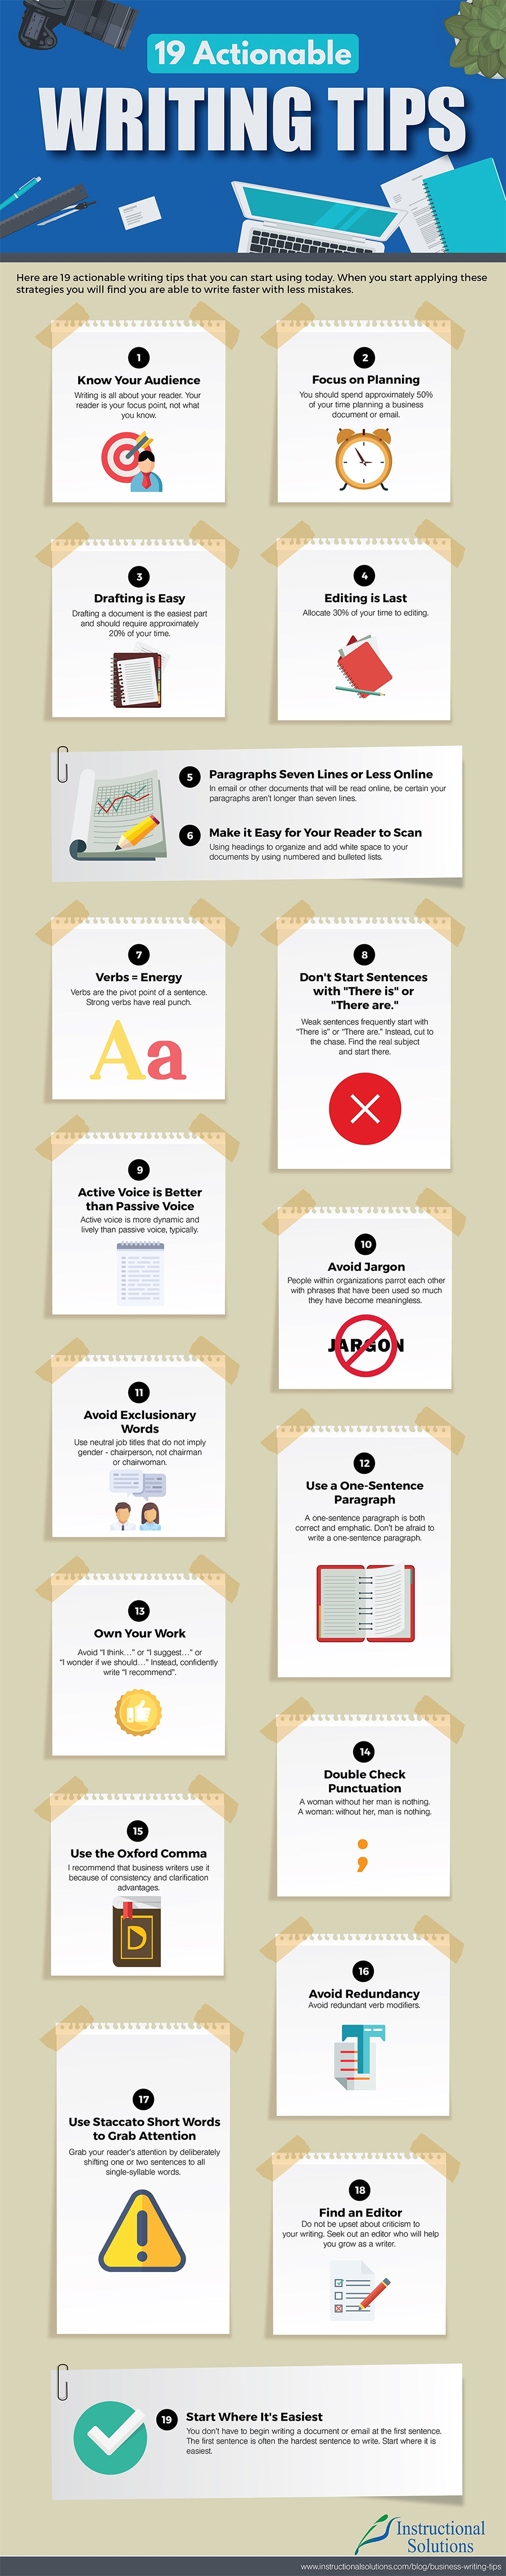 Infographic outlines writing tips to help improve your copy